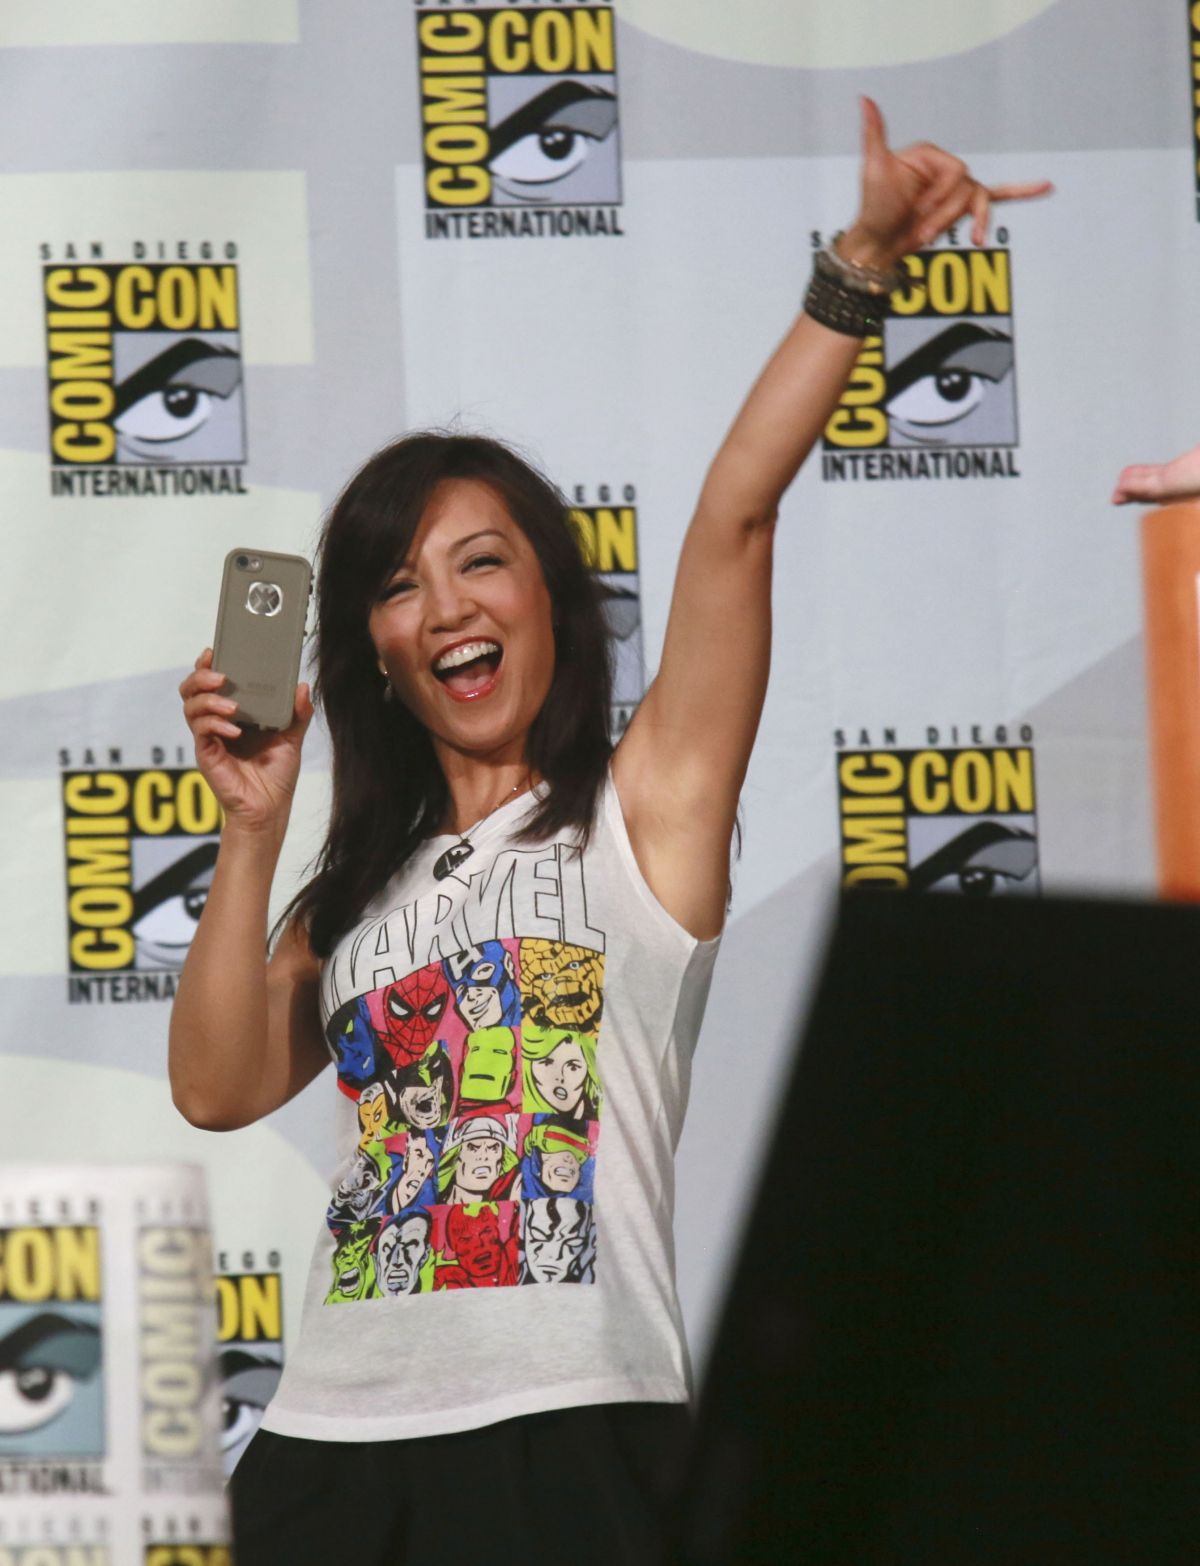 MING-NA WEN at Agents of S.H.I.E.L.D. Panel at Comic-con in San Diego